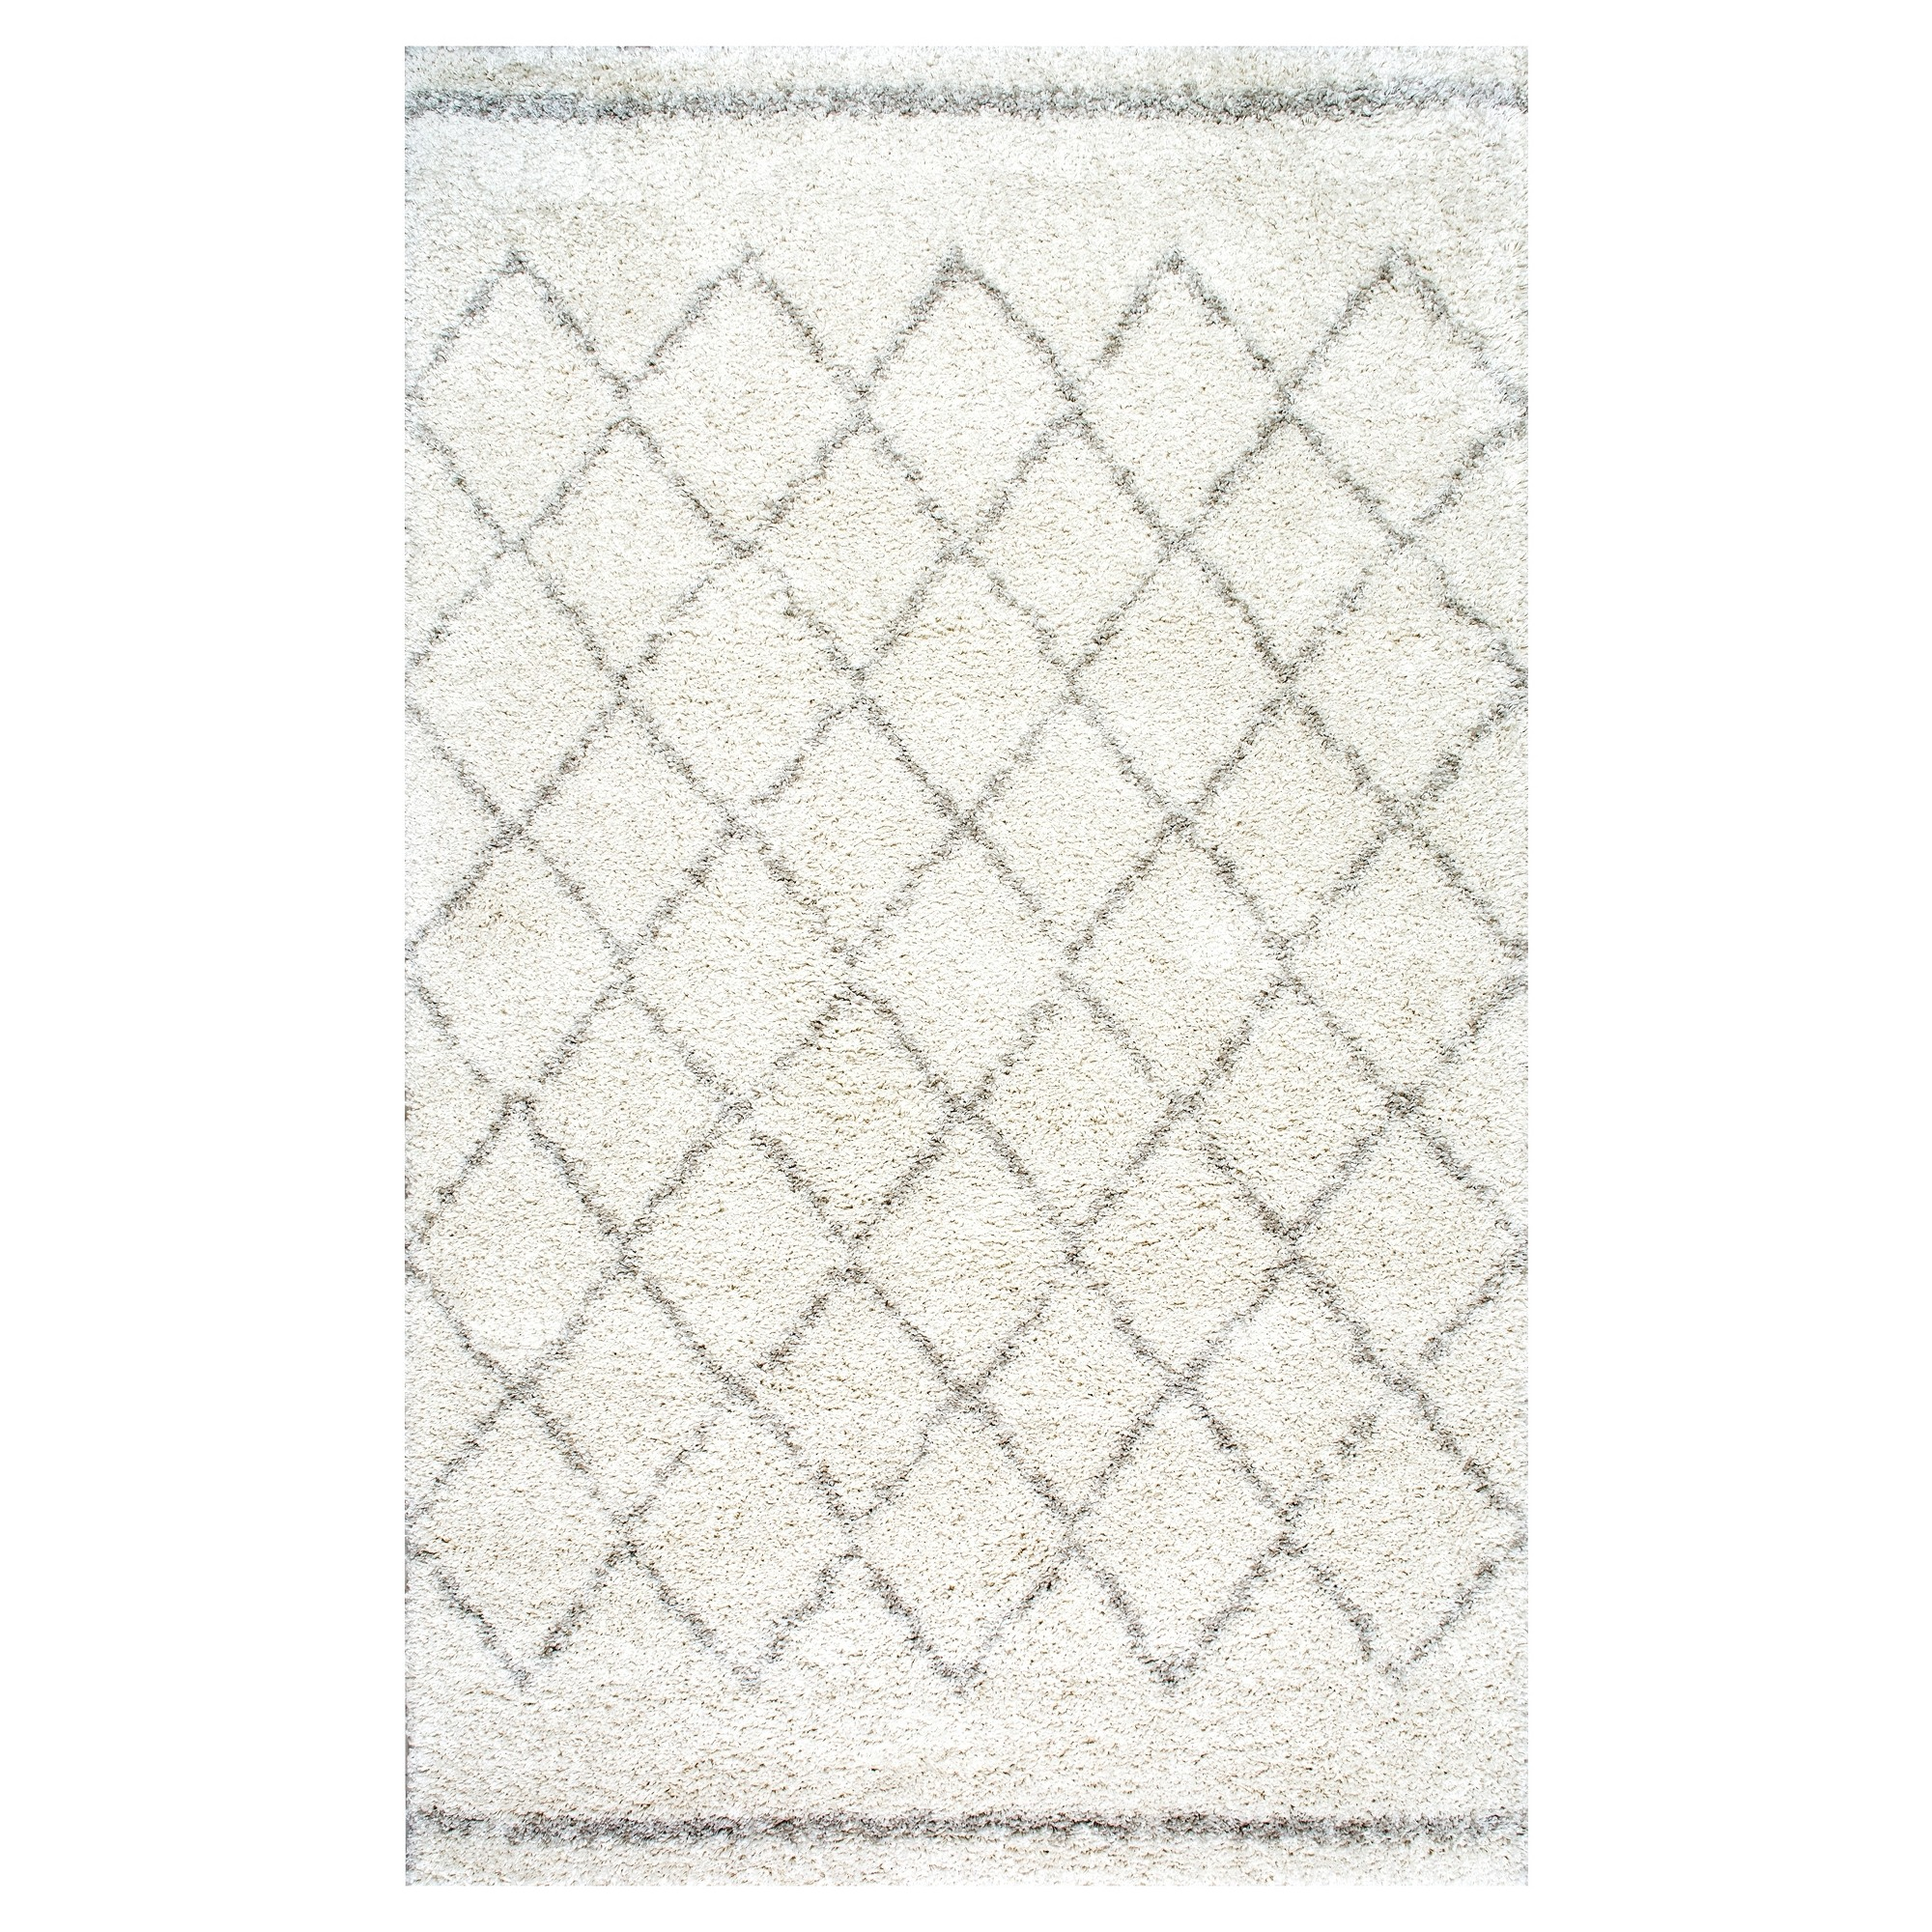 White Solid Loomed Area Rug - (5'x8') - nuLOOM, Size: 5' x 8', White Beige